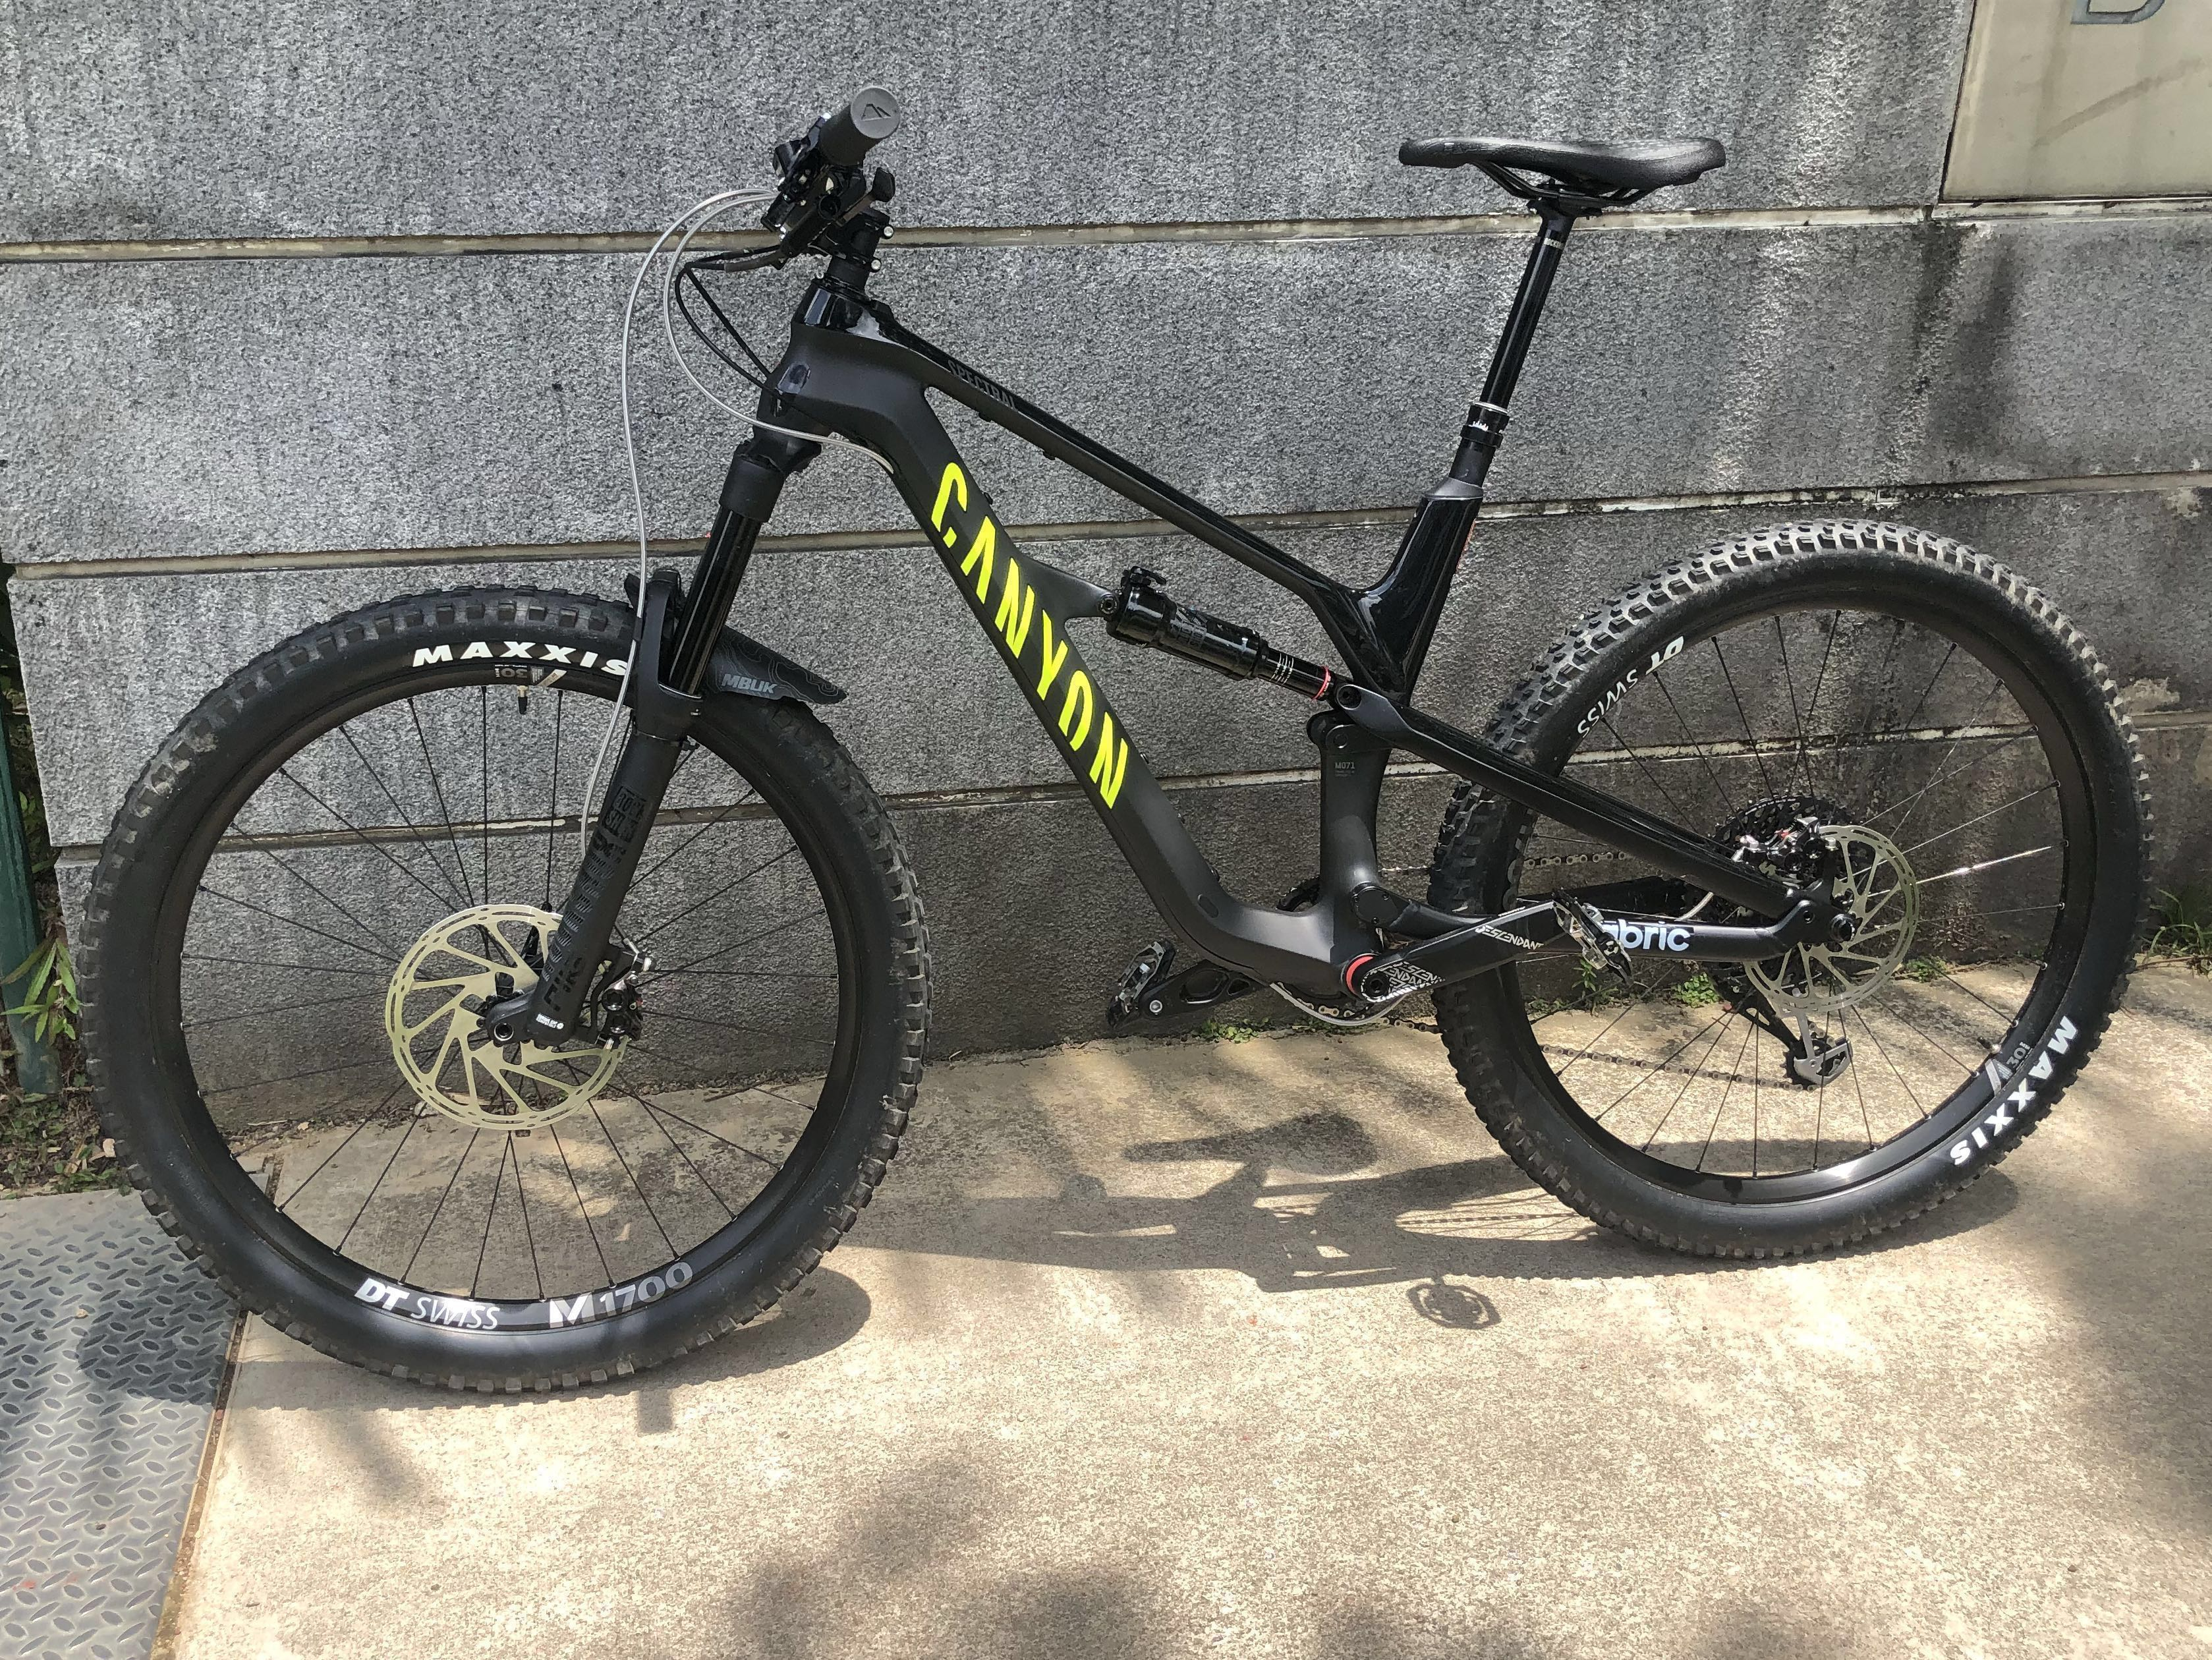 [☄️UPGRADED🔥] 2018 CANYON SPECTRAL CF 8 0 w/ Warranty for new owner